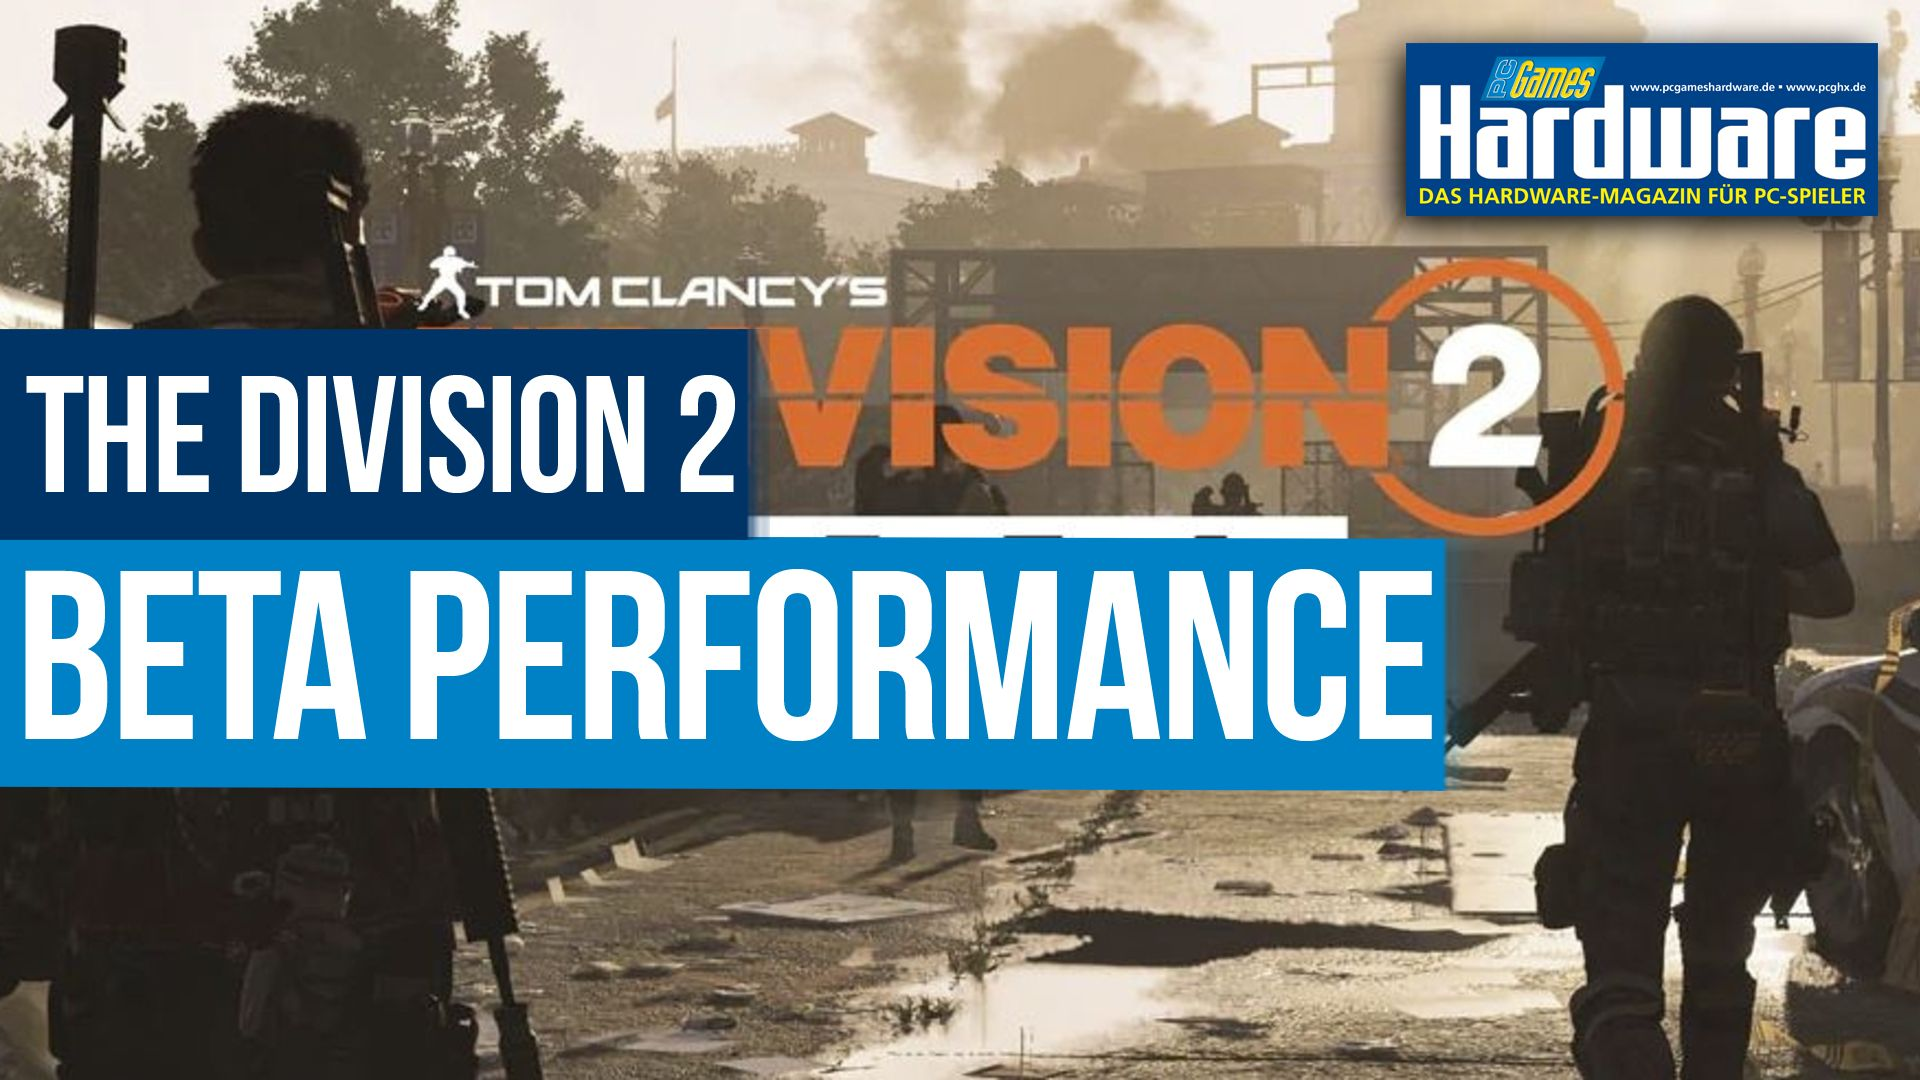 The Division 2: Performance der Private Beta